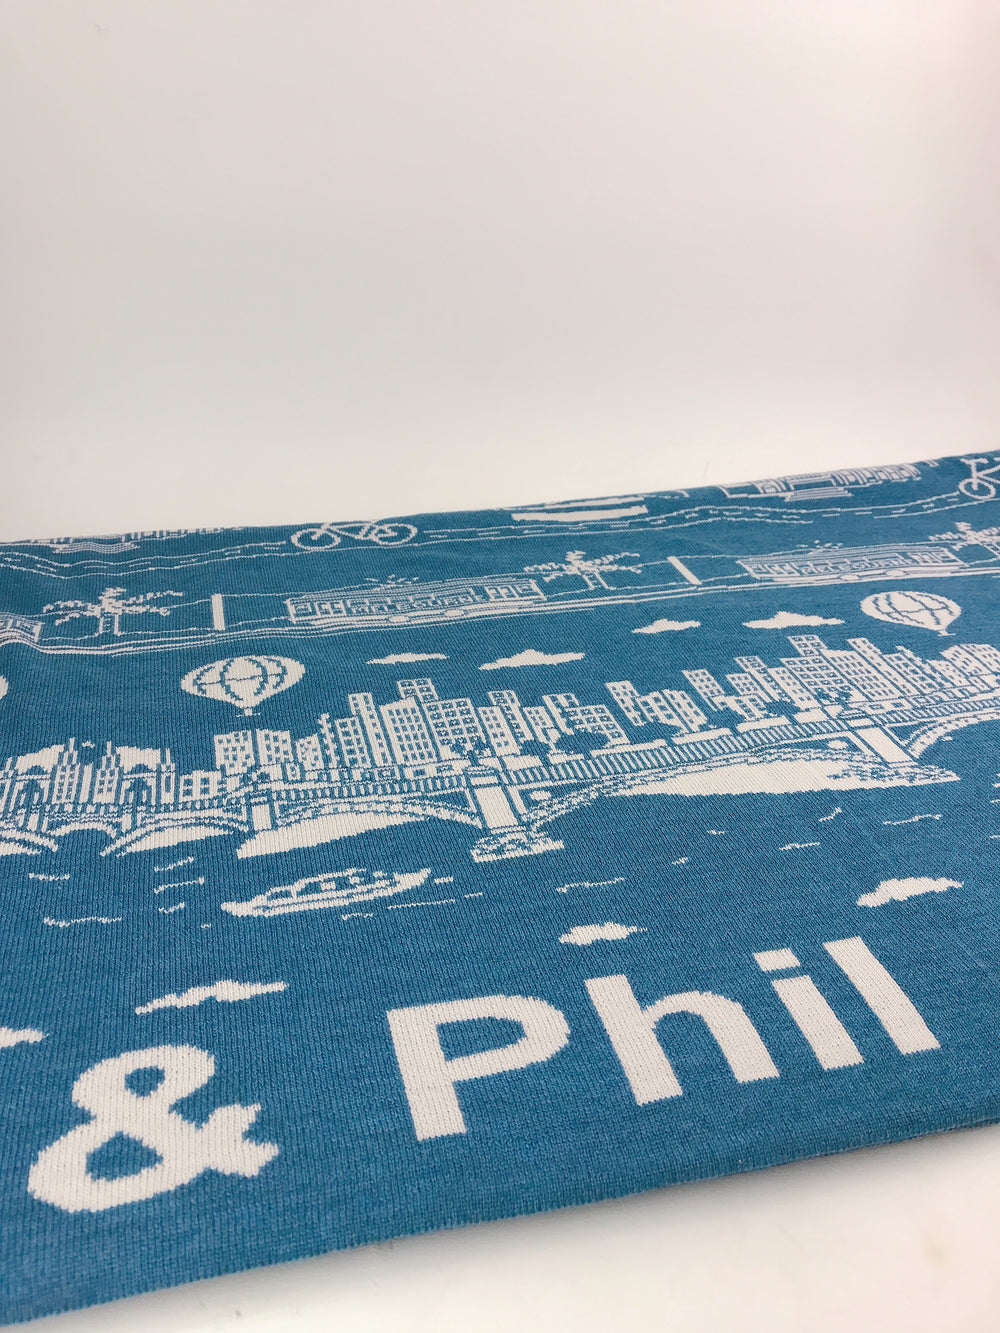 PERSONALISED BLANKETS - MELBOURNE -  -